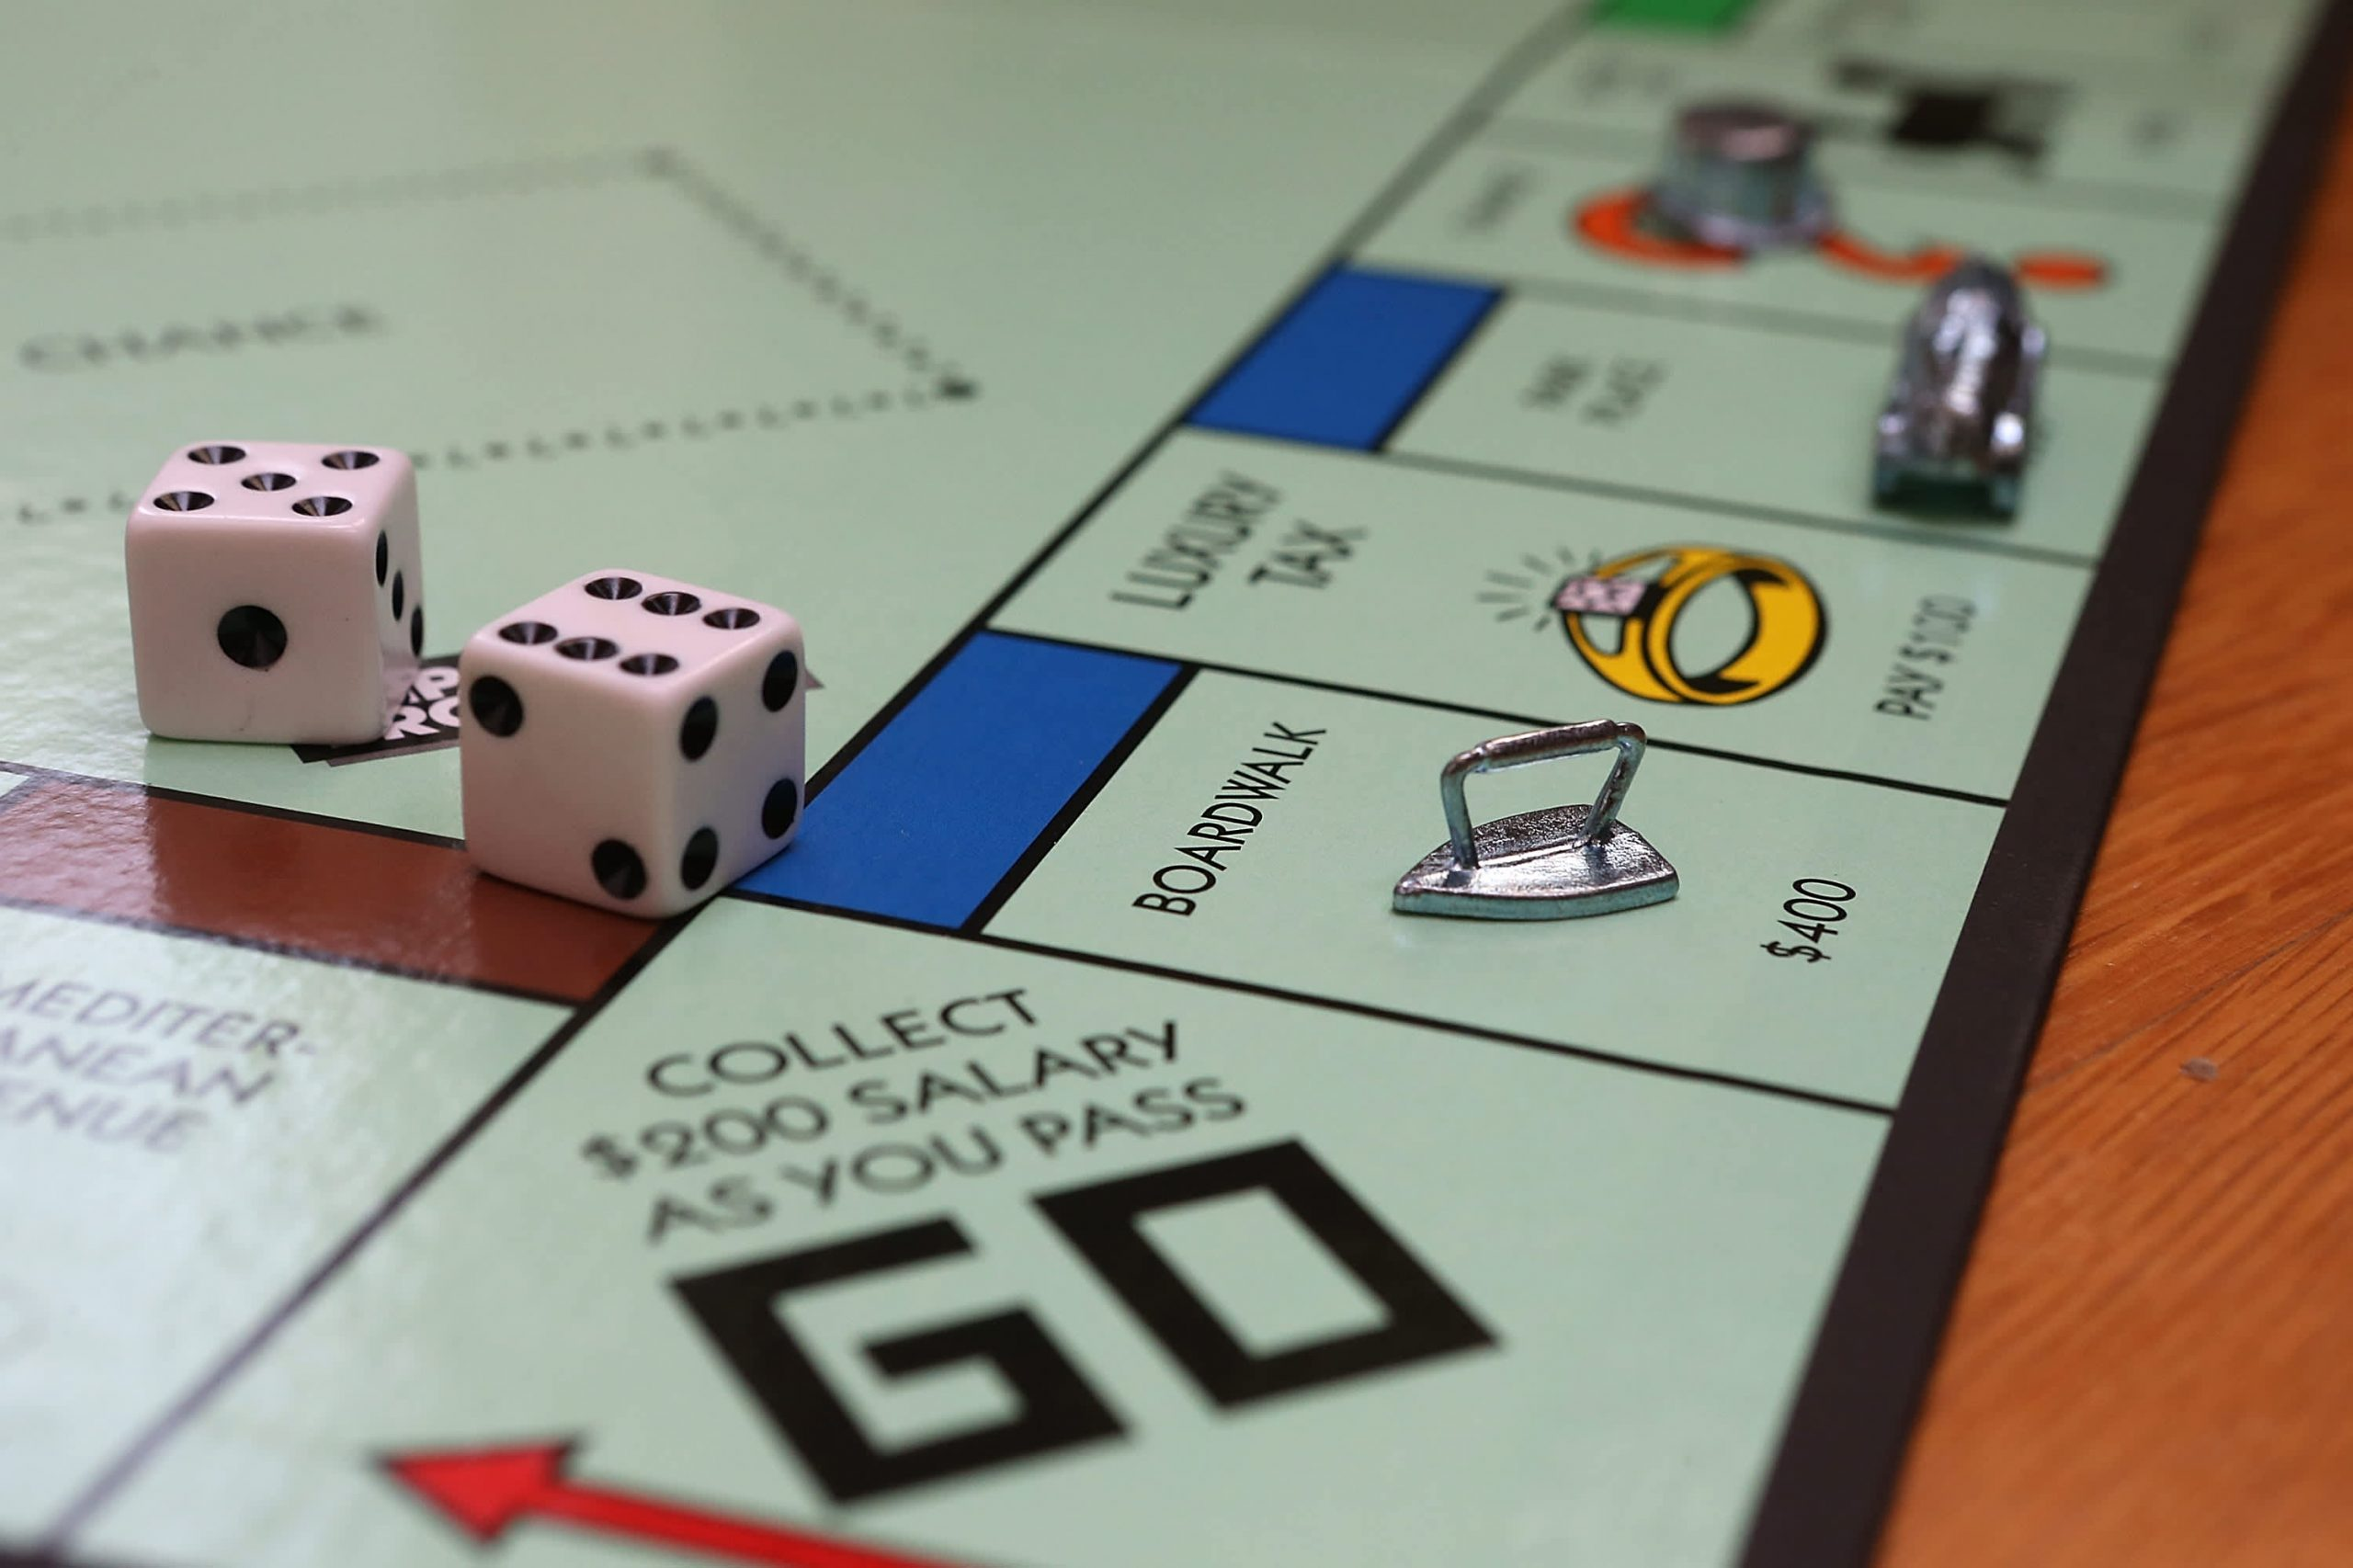 Hasbro partners with Roblox to develop Monopoly and Nerf products